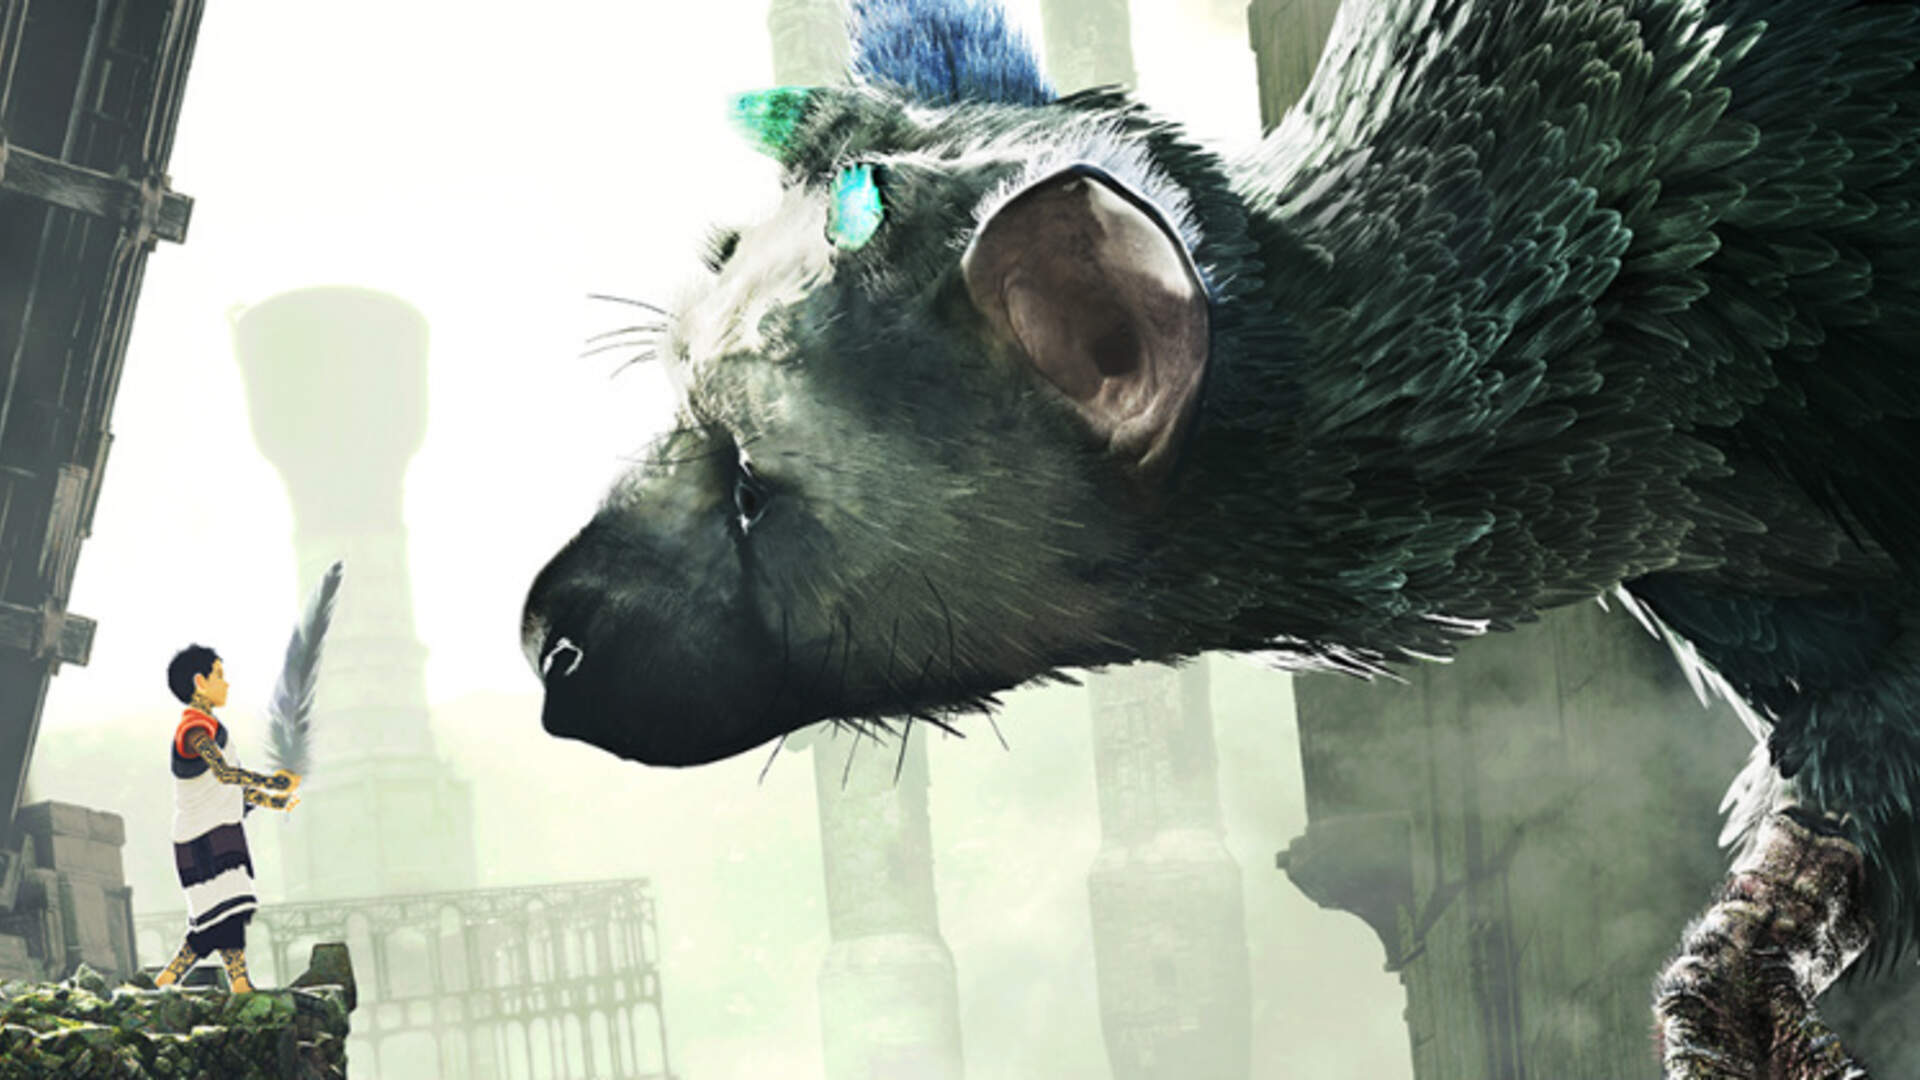 The Last Guardian Pushed Back Again… Until December 6